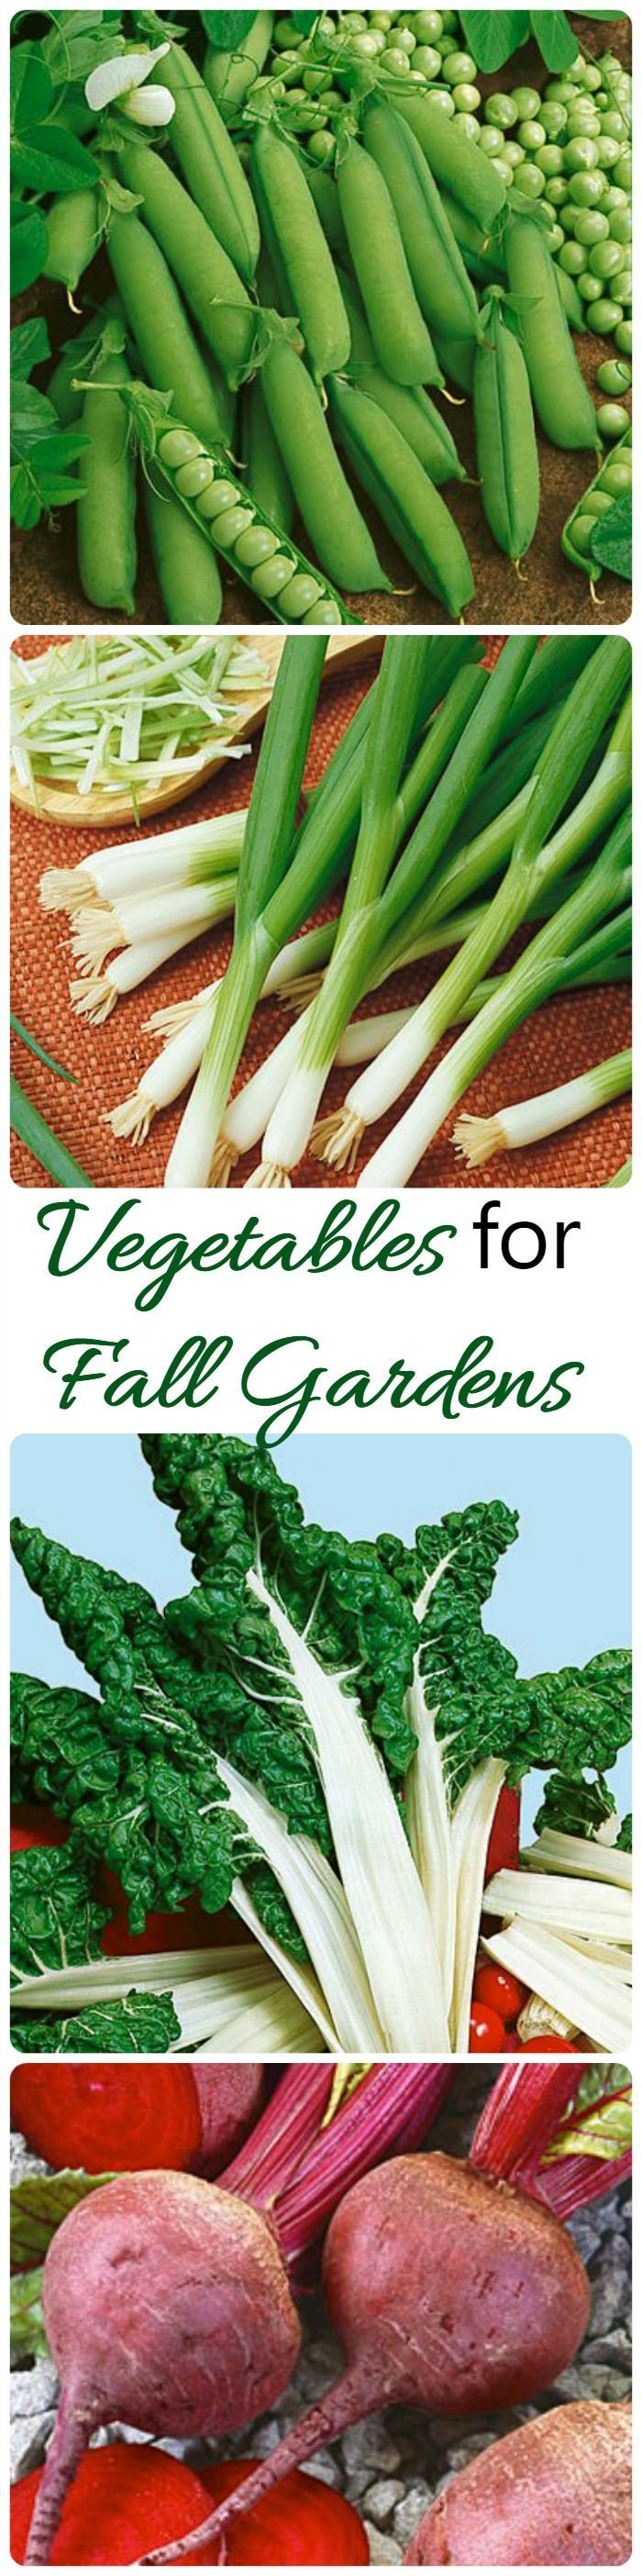 fall gardens what vegetables to plant now summer gardens and